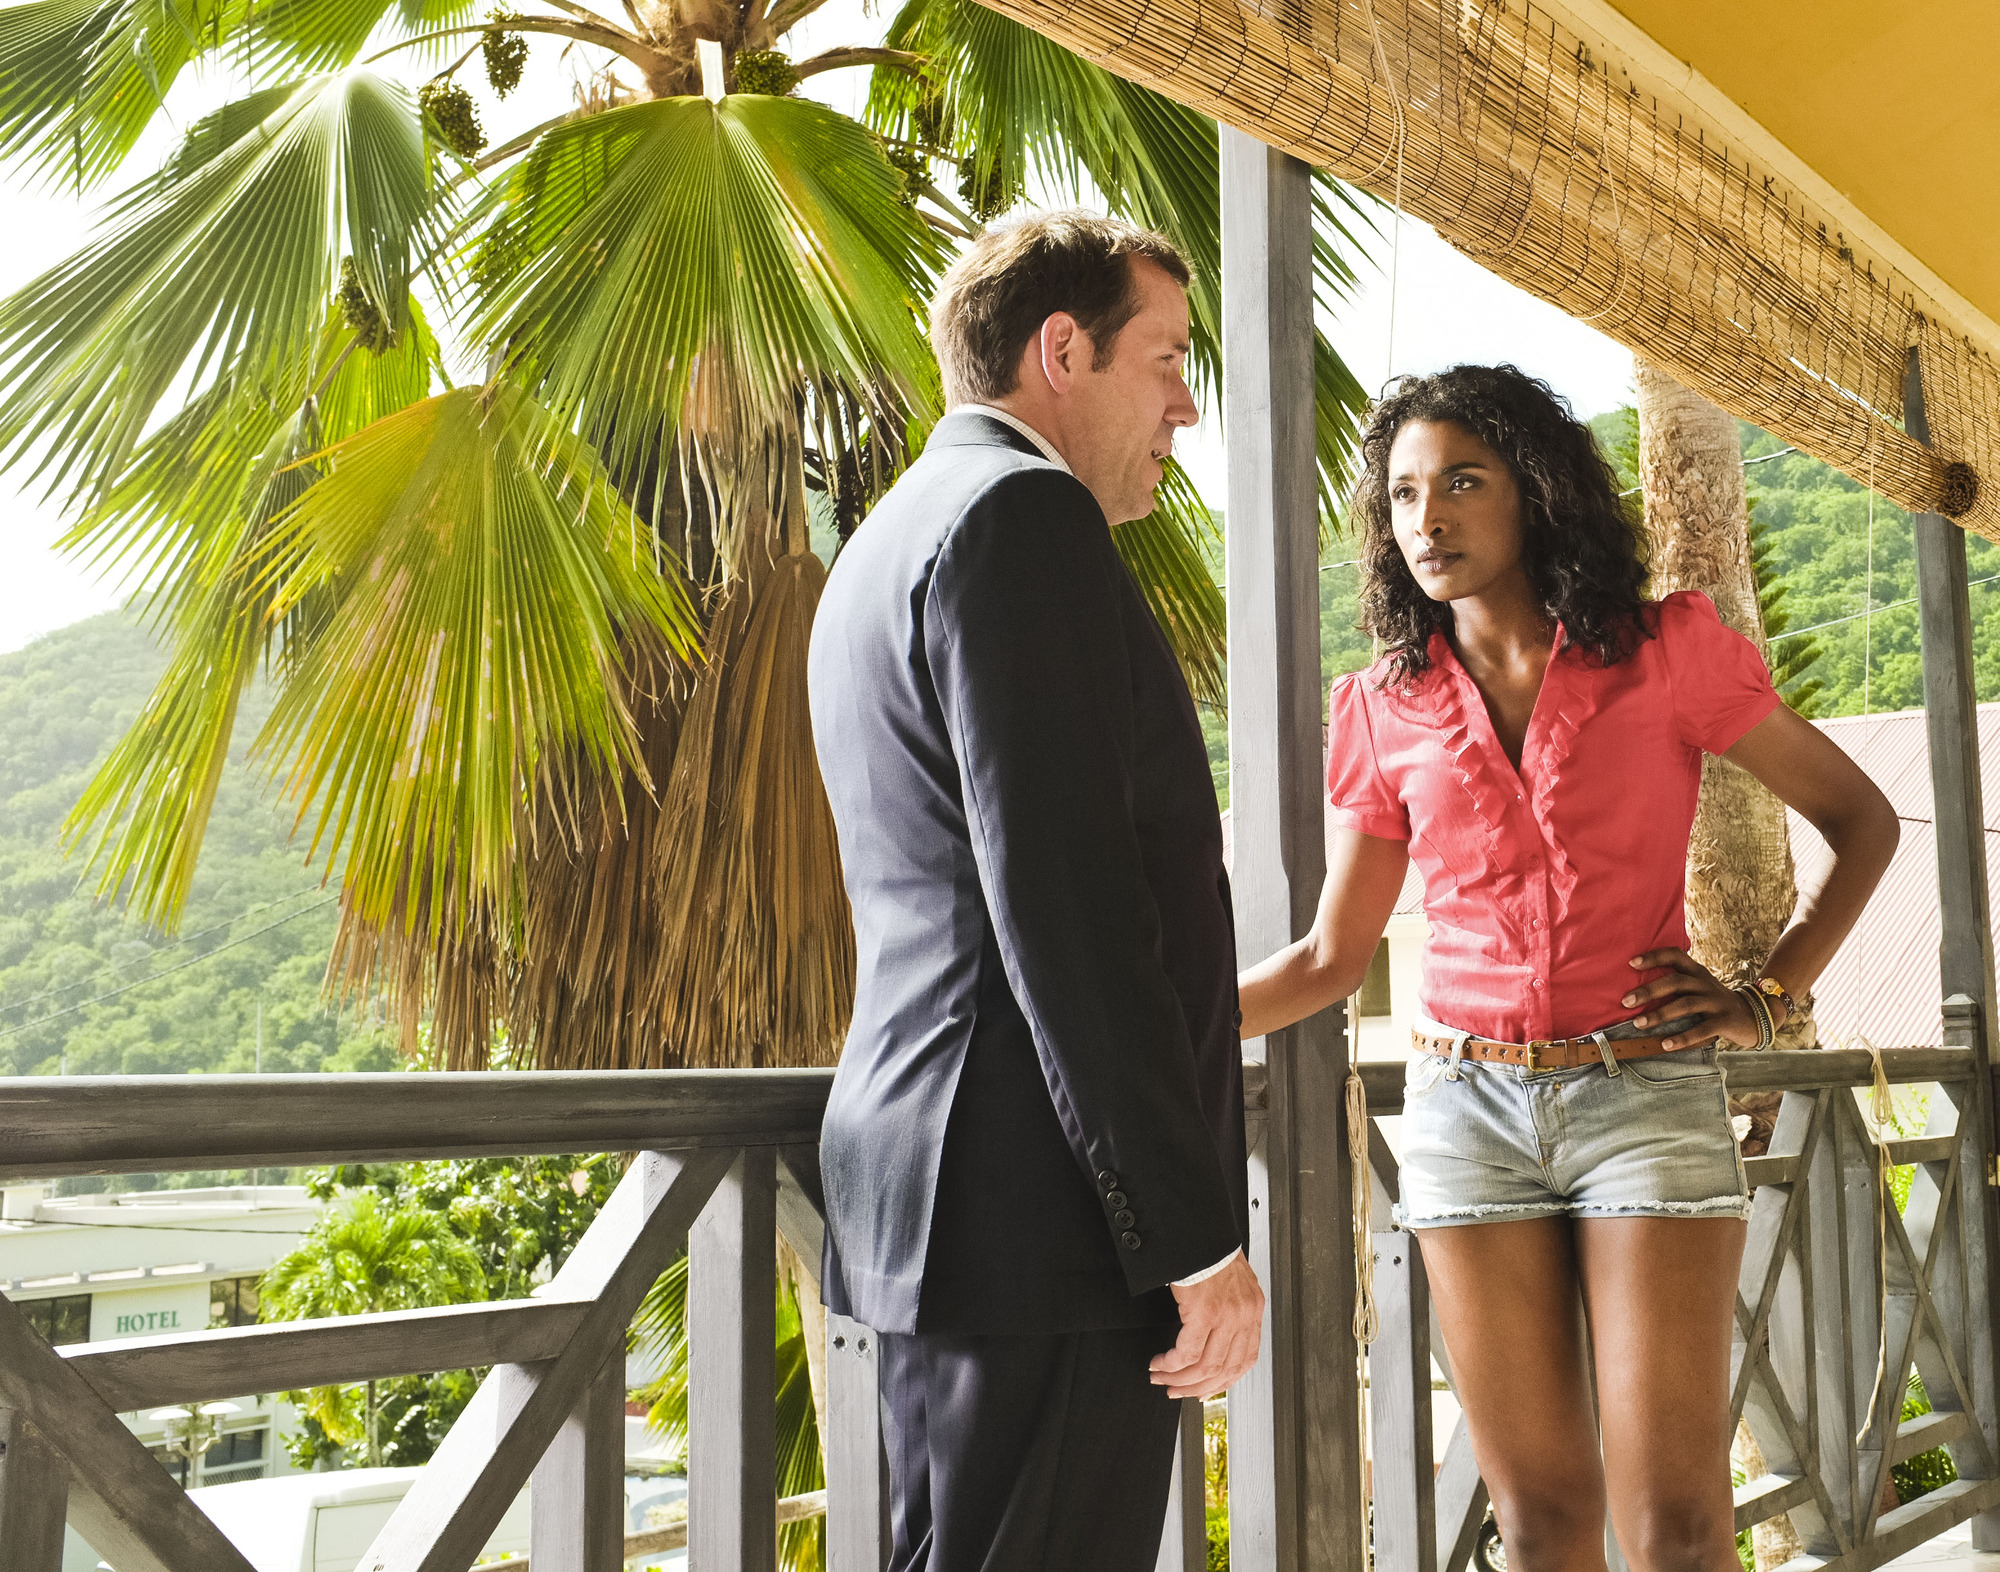 death in paradise - photo #18